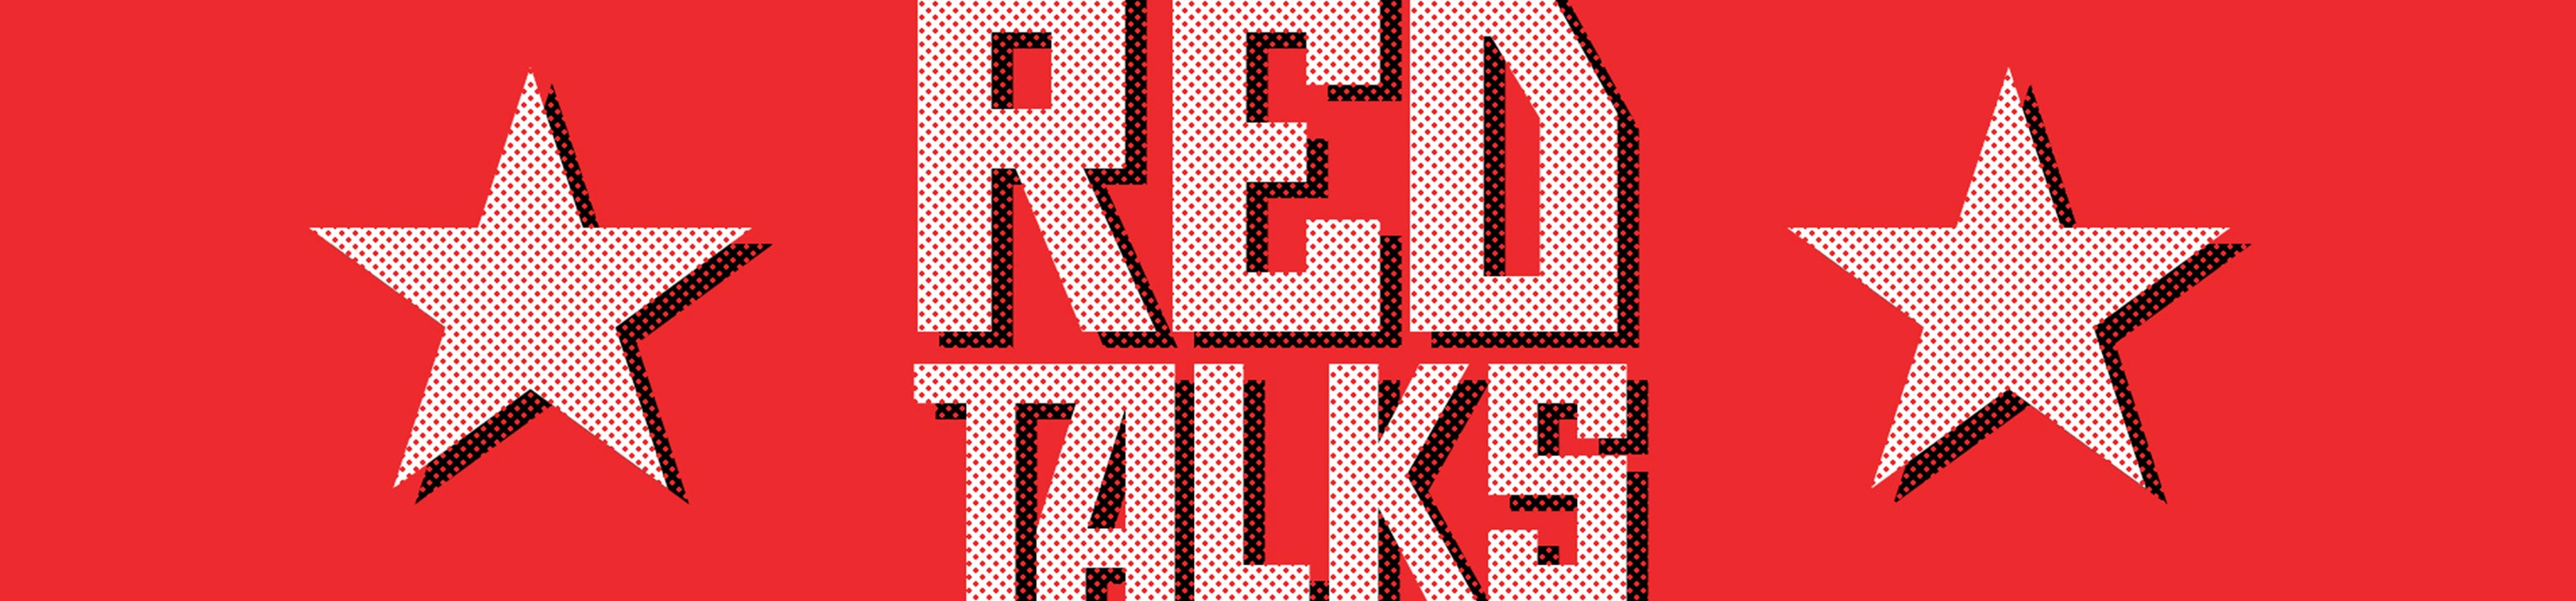 "Red graphic that says ""Red Talks"""